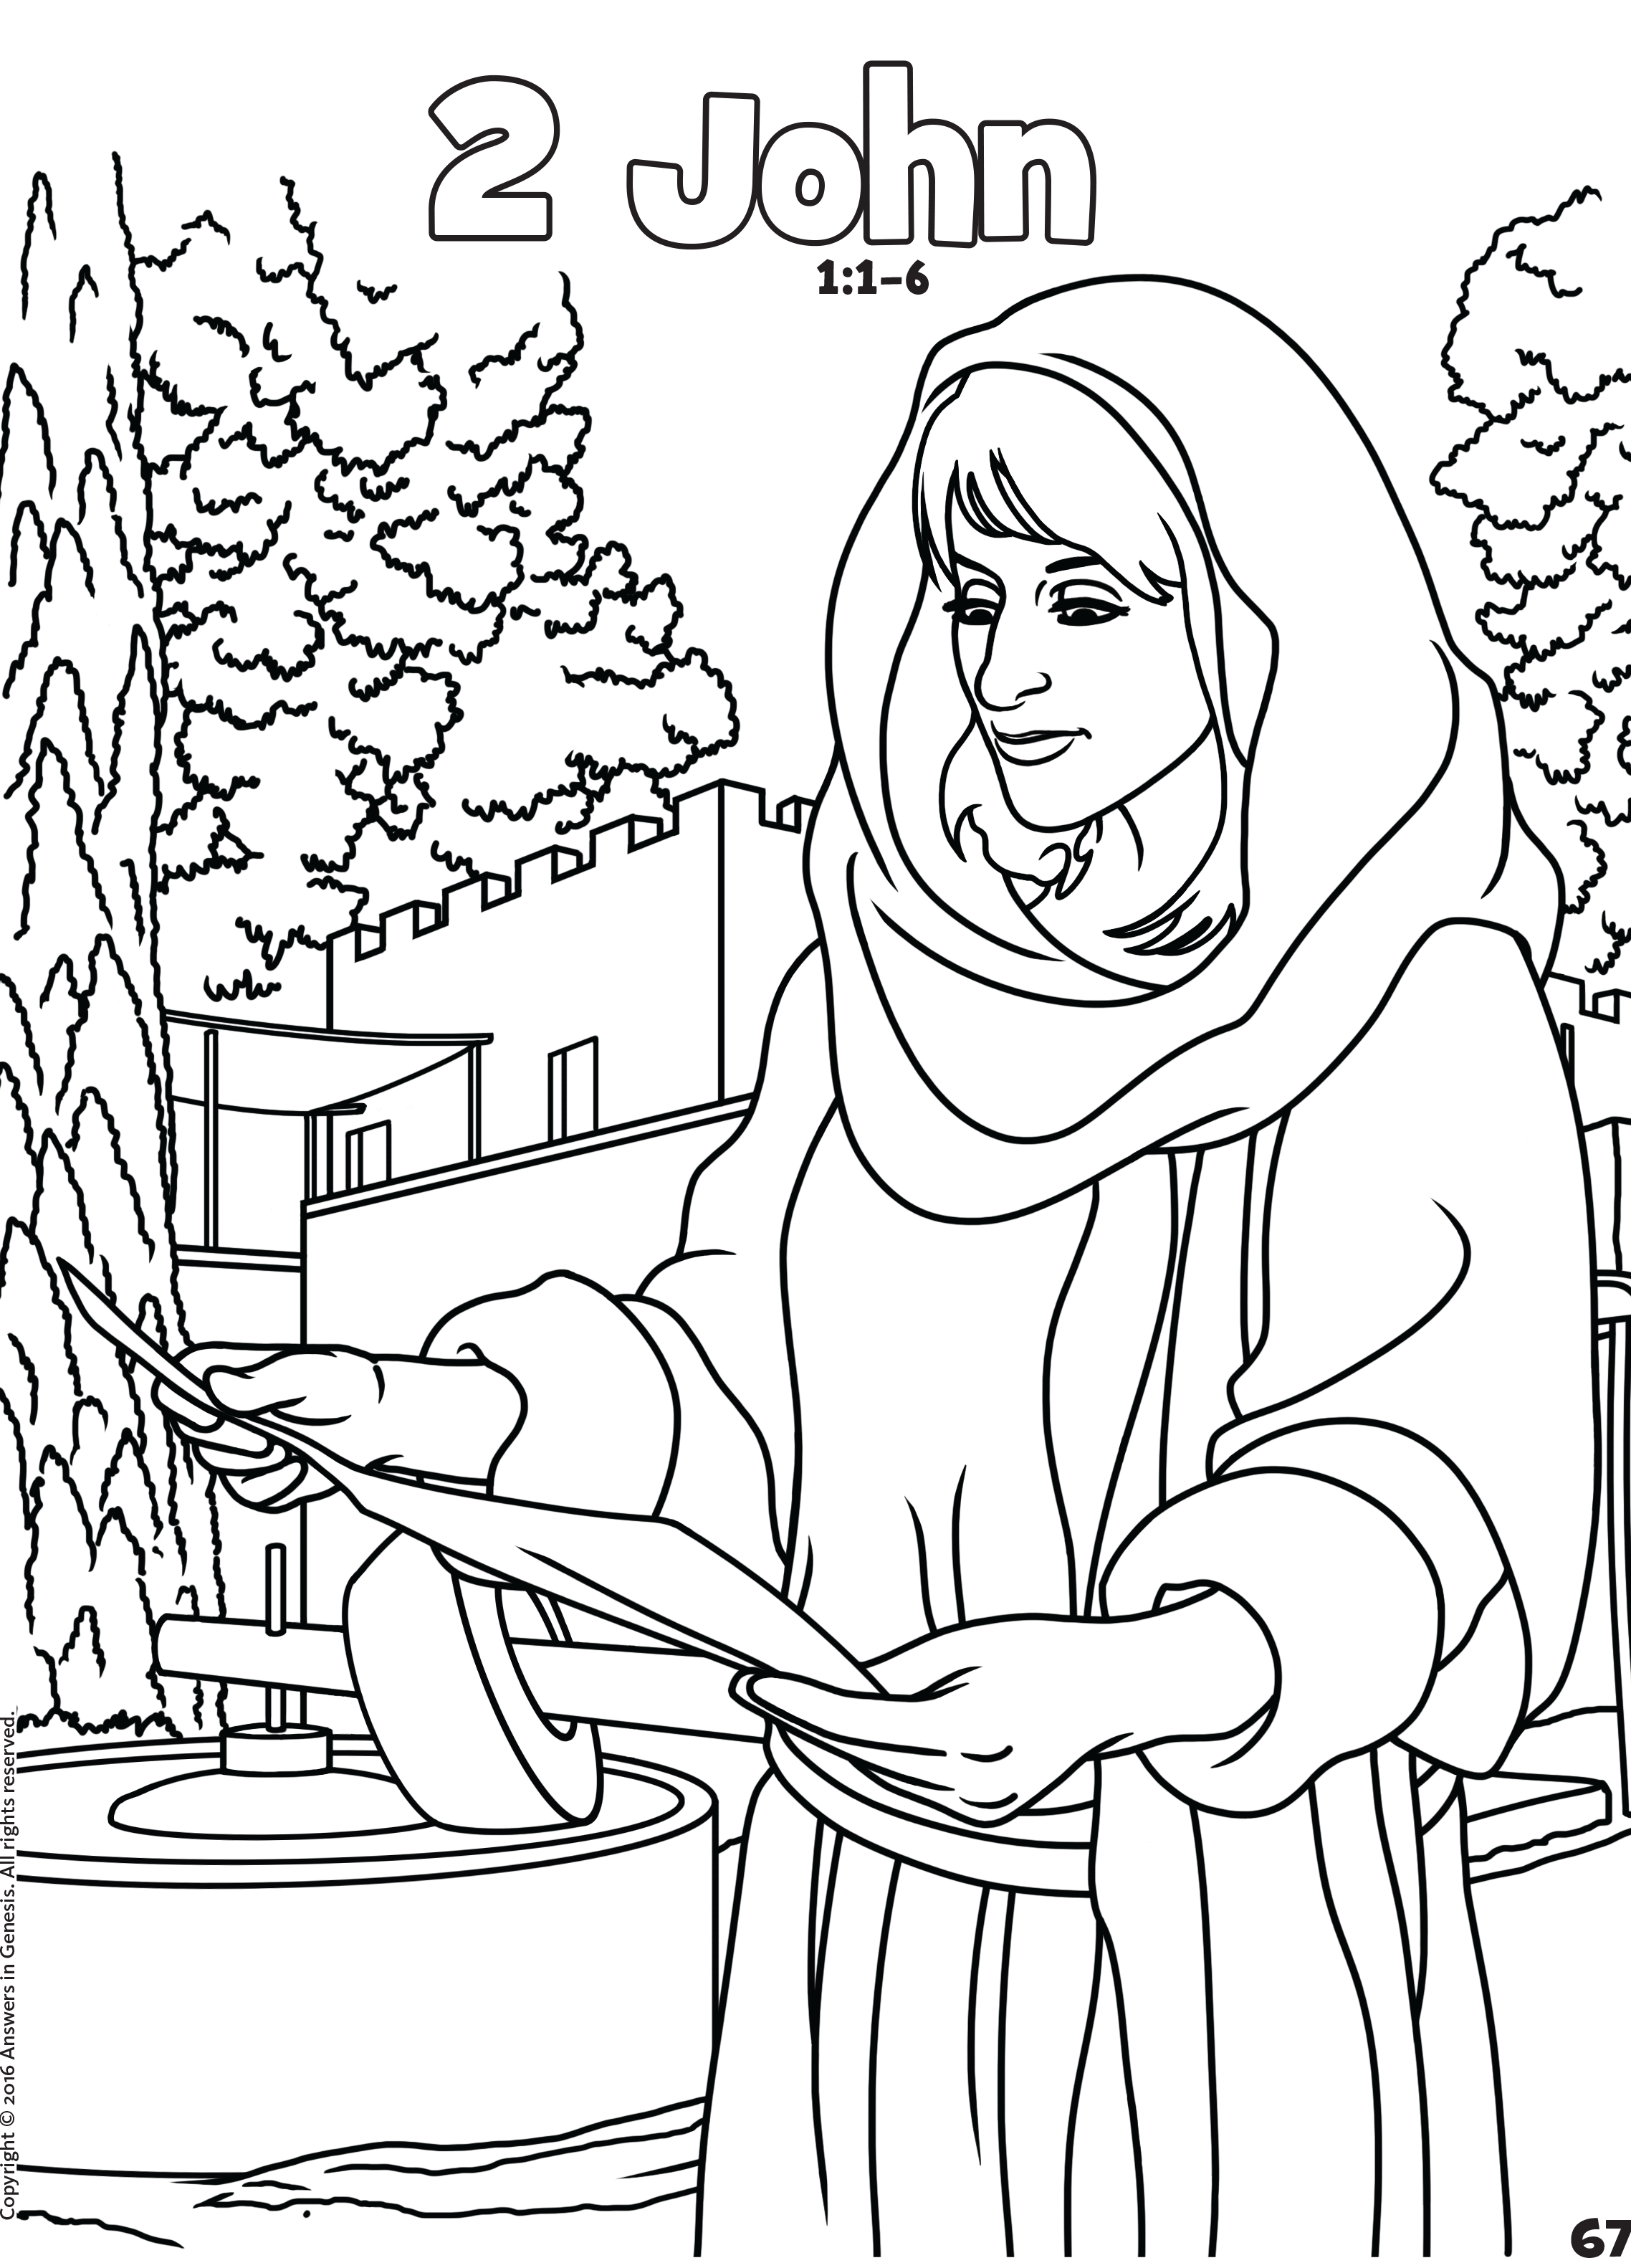 2 John Free Bible book coloring pages in .pdf format